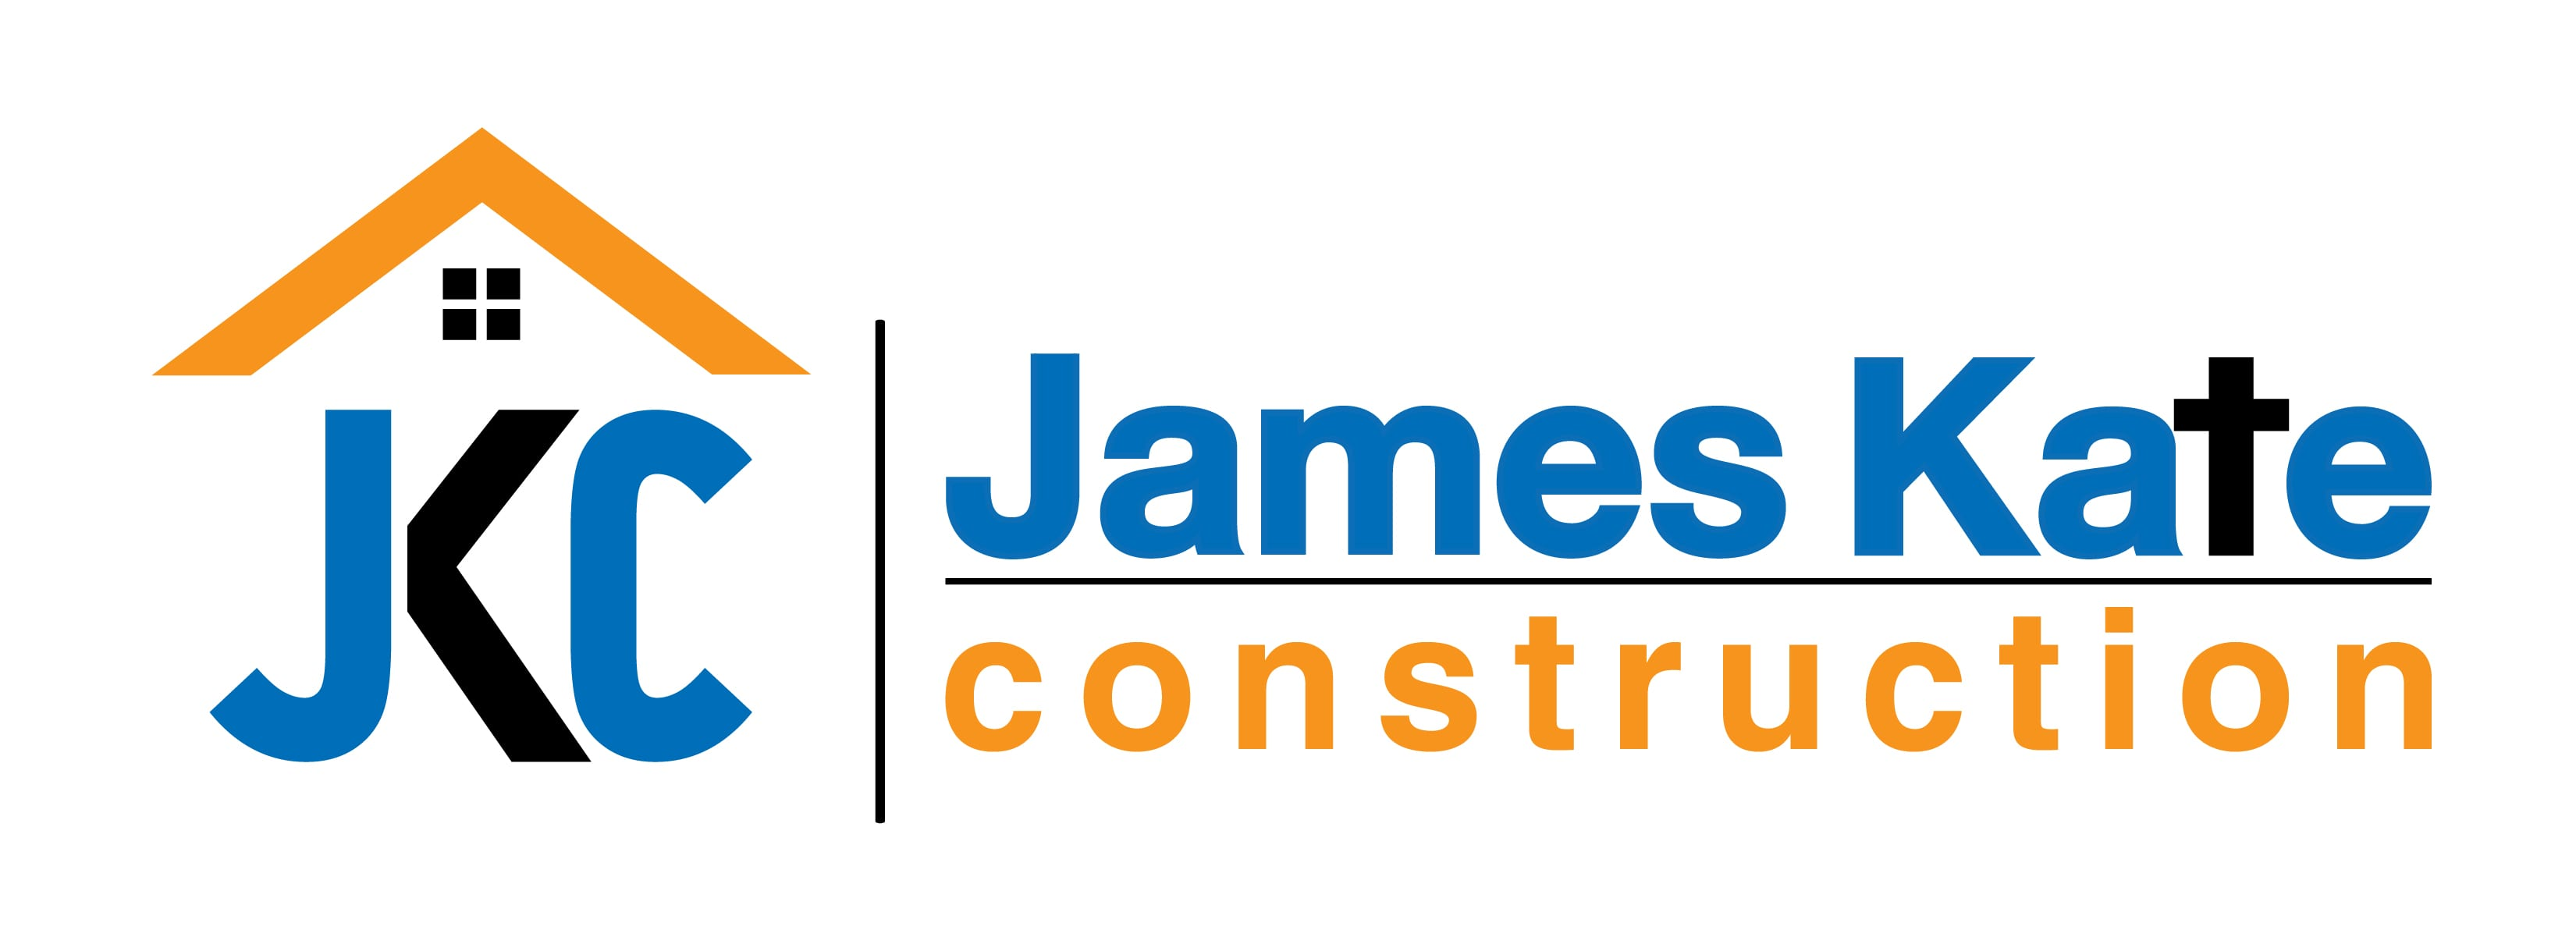 James Kate Construction: Roofing, Painting & Windows, Arlington Roofer, is Offering Excellent Roofing Services in Arlington